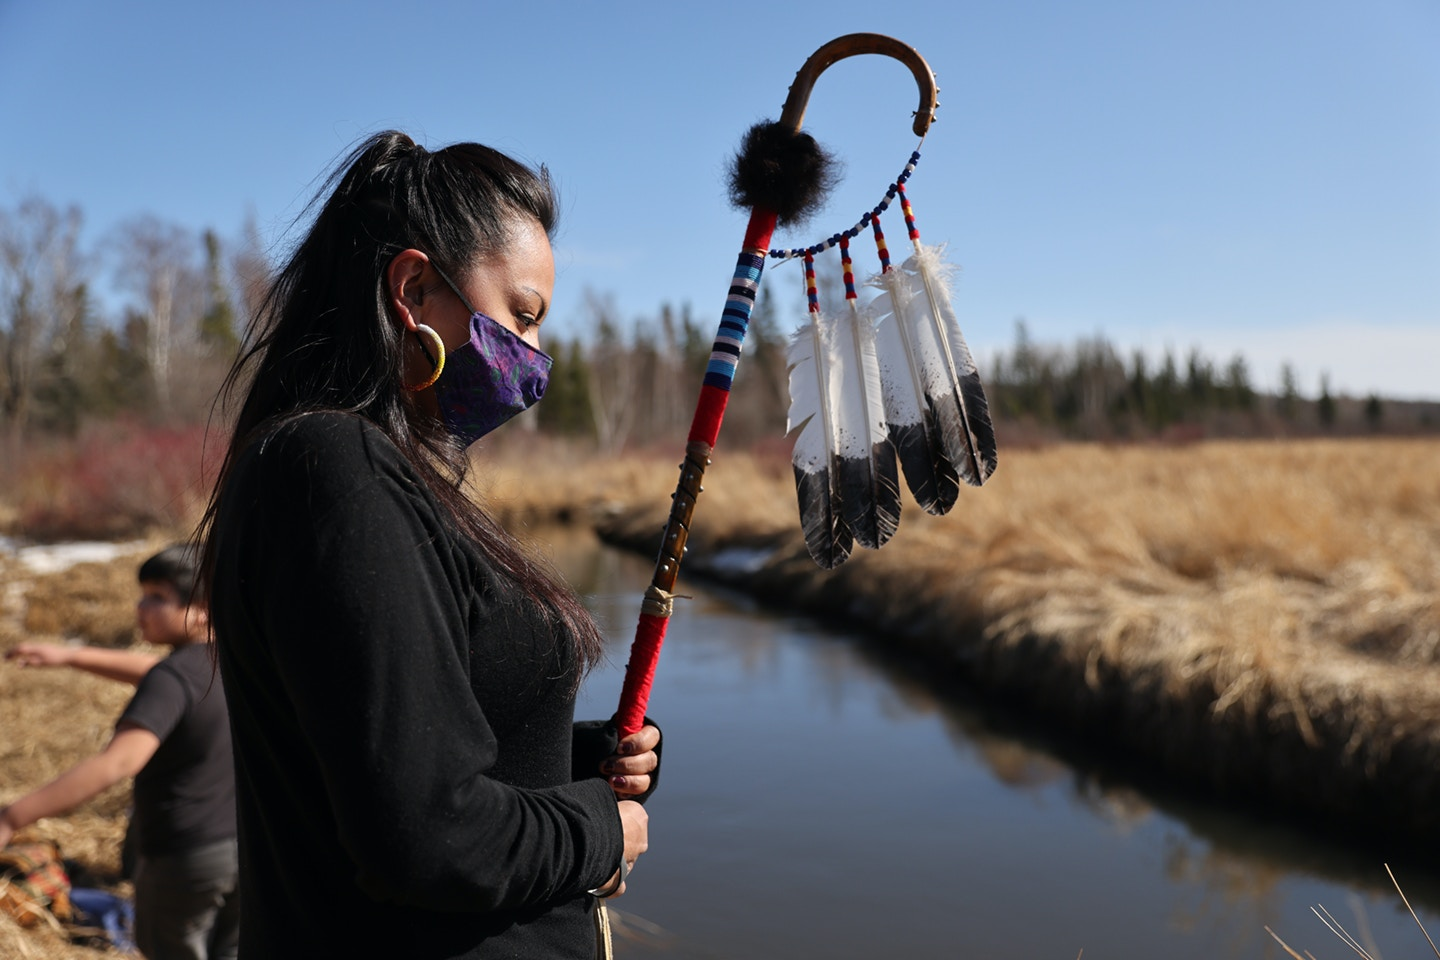 Sasha Beaulieu during a World Water Day rally at the headwaters of the Mississippi River in Northern Minnesota on March 22nd, 2021.